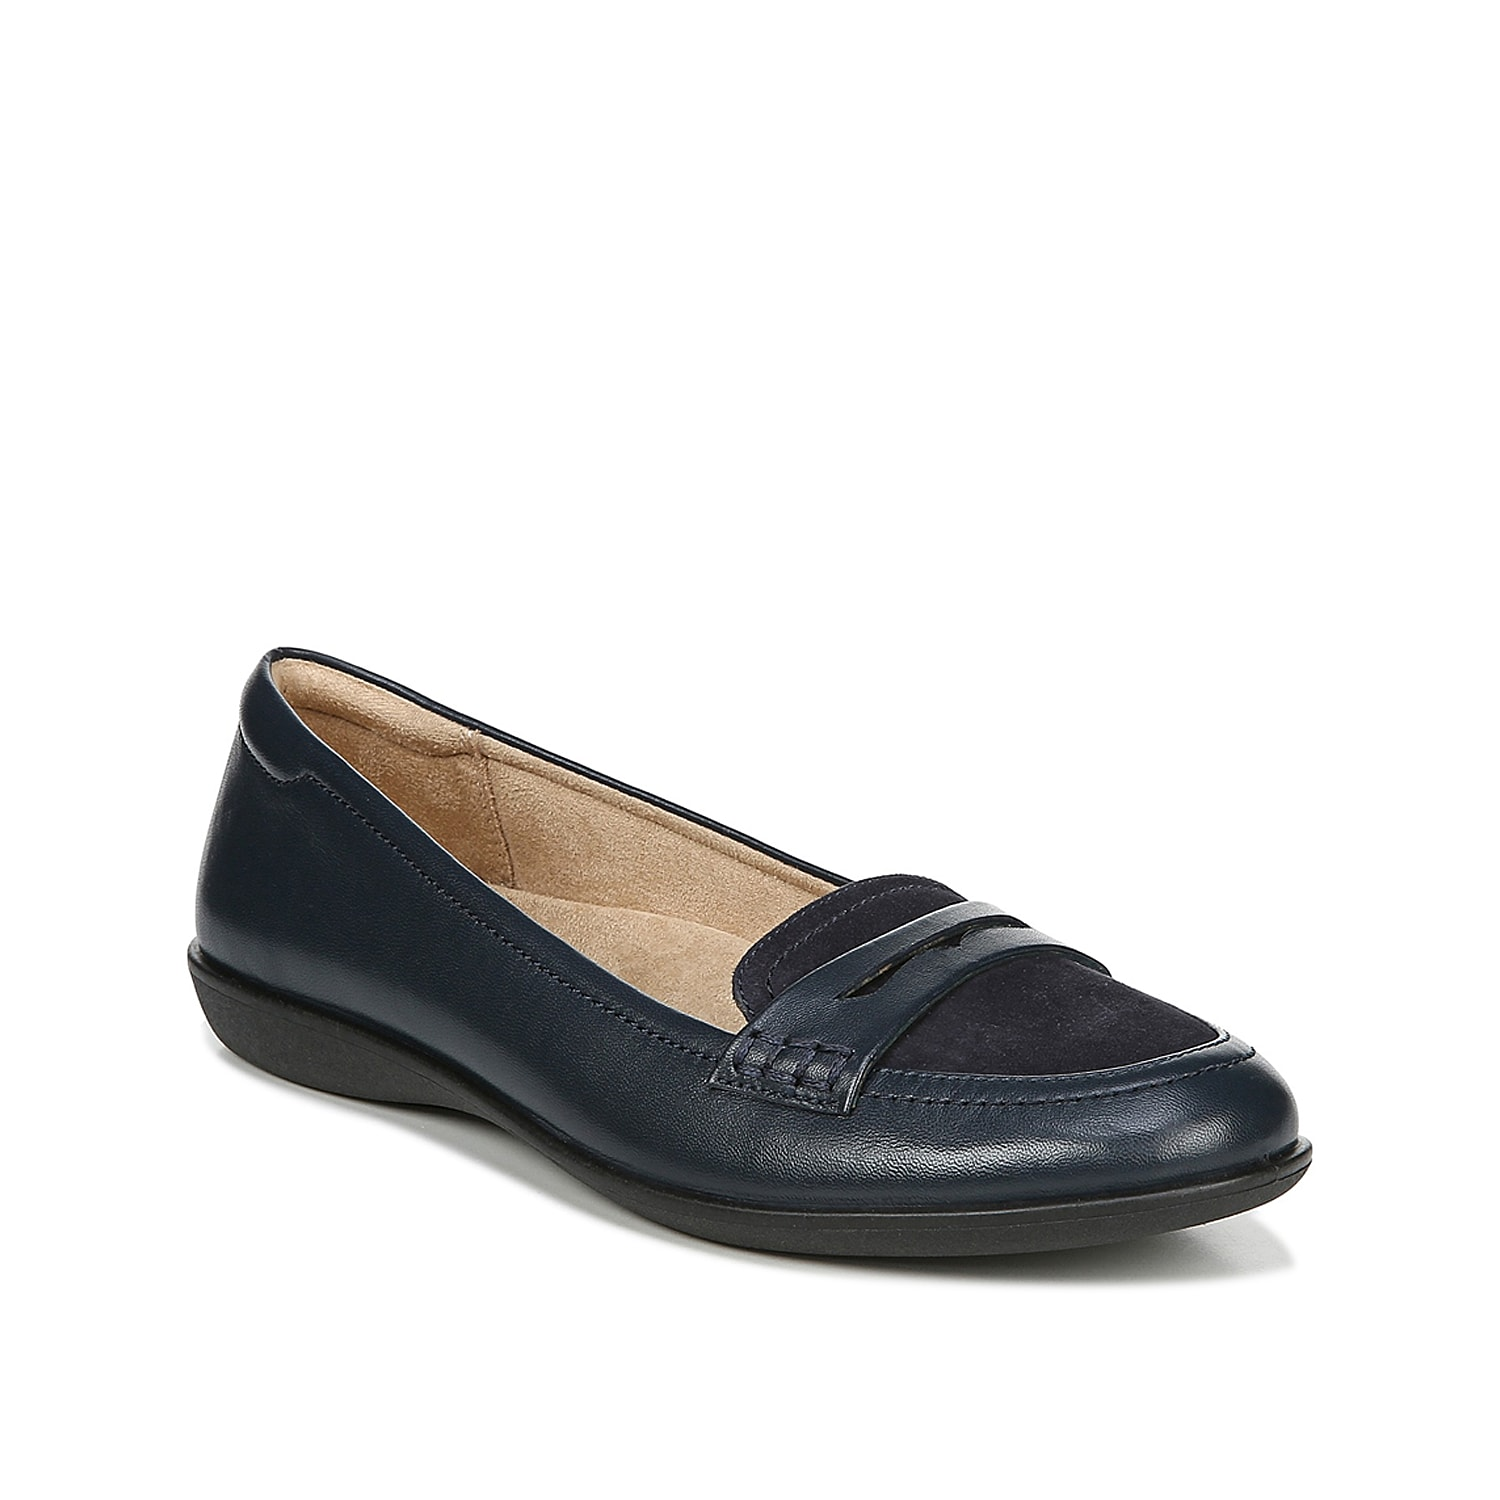 Naturalizer brings you the Finley loafer for daylong comfort. This slip-on is fashioned with leather and an N5 Contour footbed for lasting wear and durability.